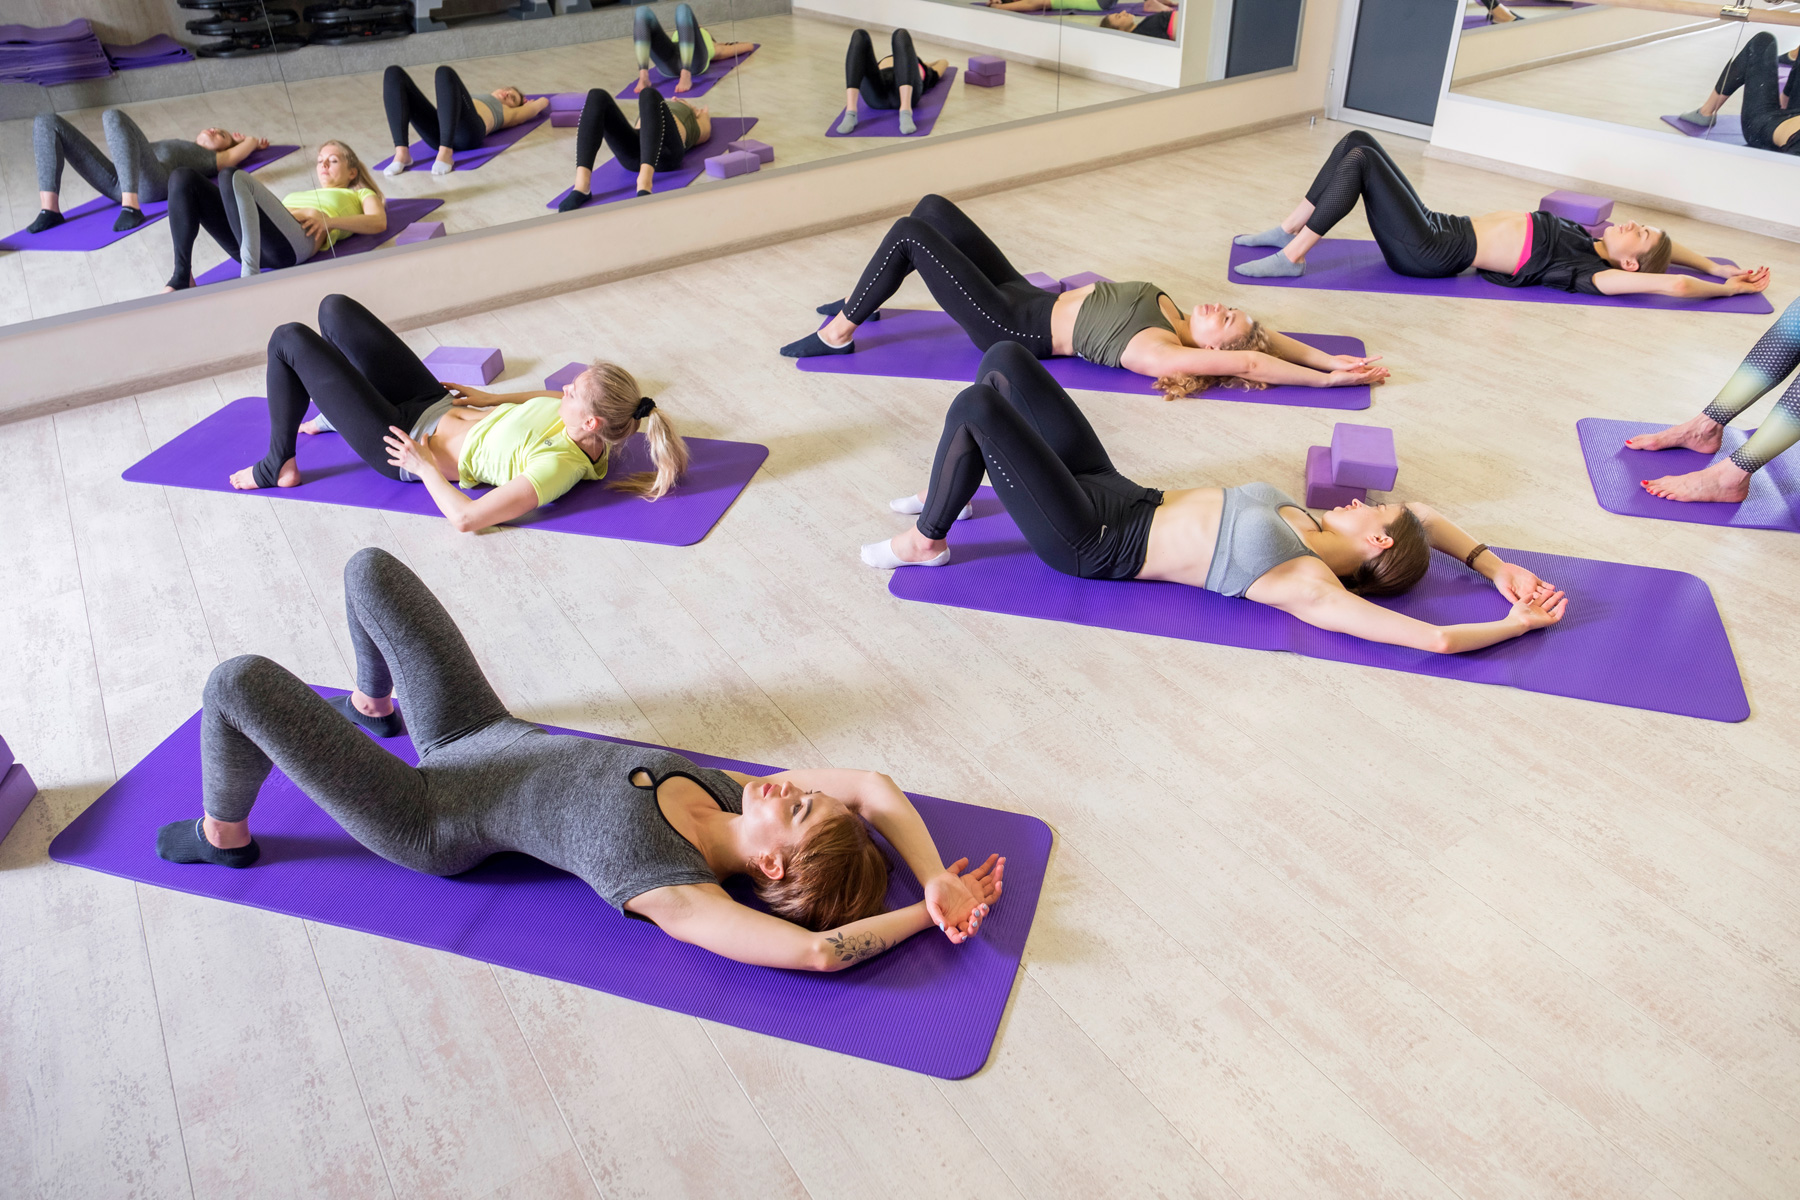 Adult fitness studio group classes in chantilly, va